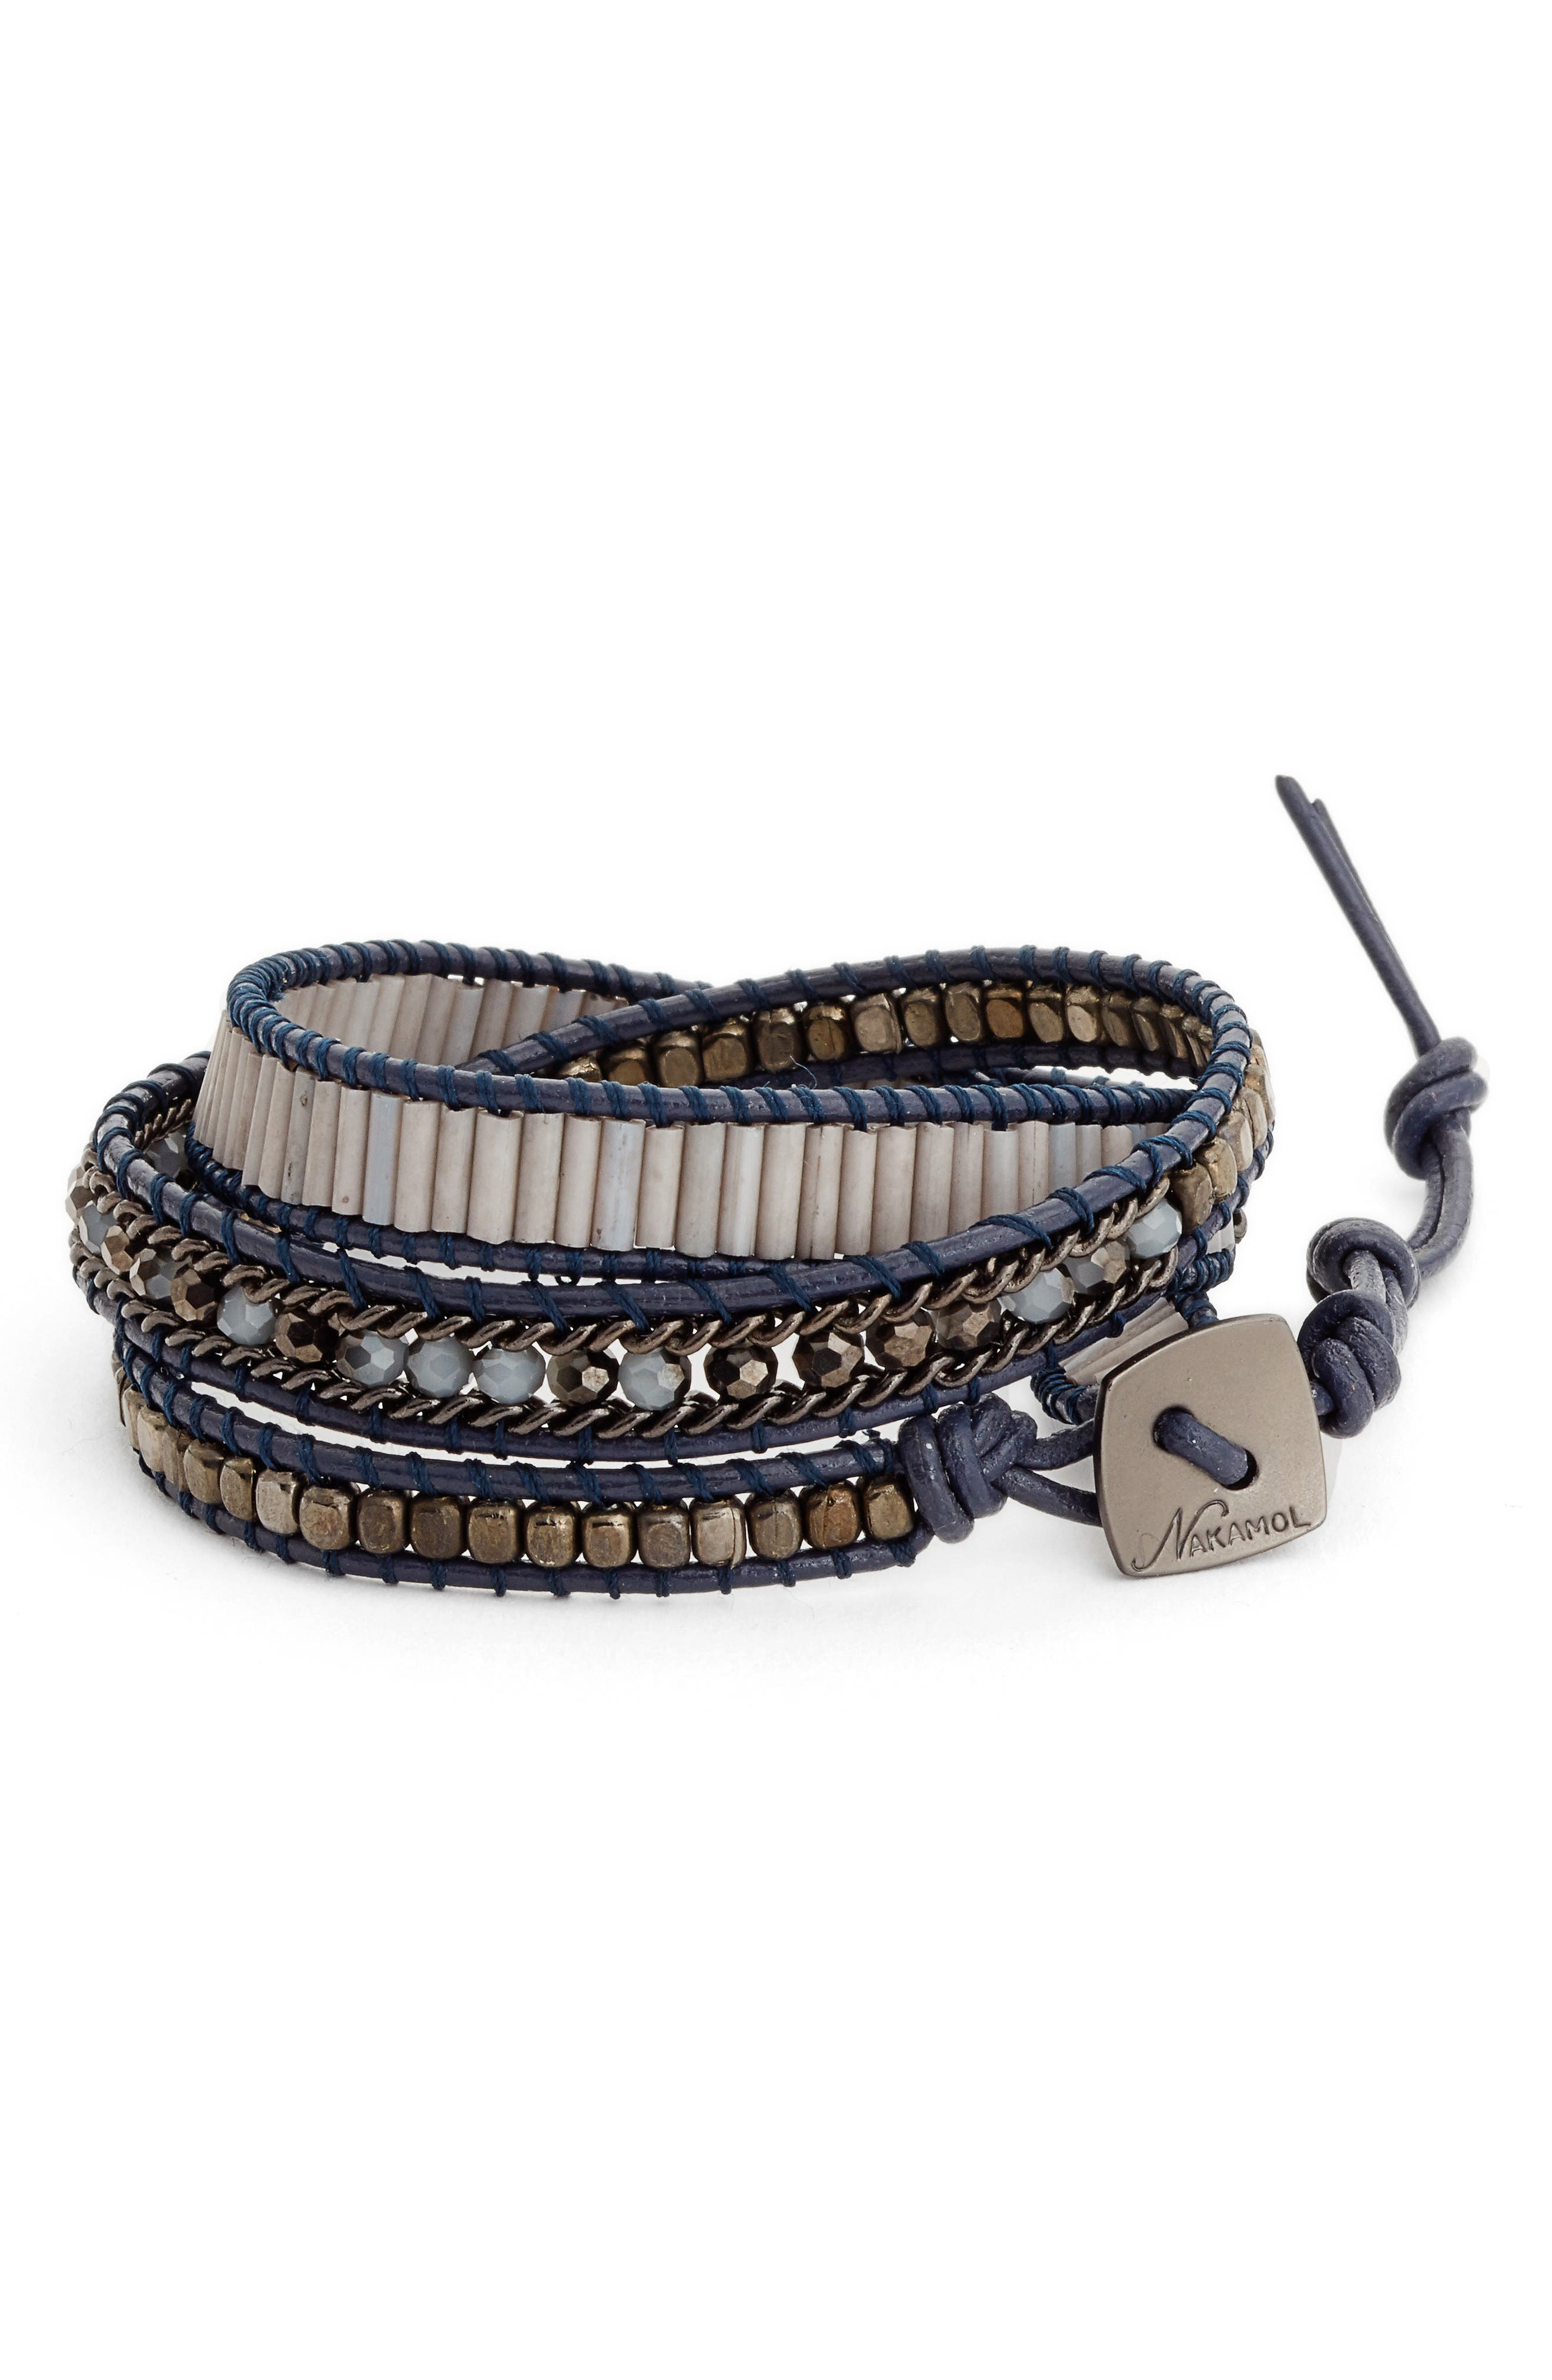 Leather & Crystal Wrap Bracelet,                             Main thumbnail 1, color,                             400